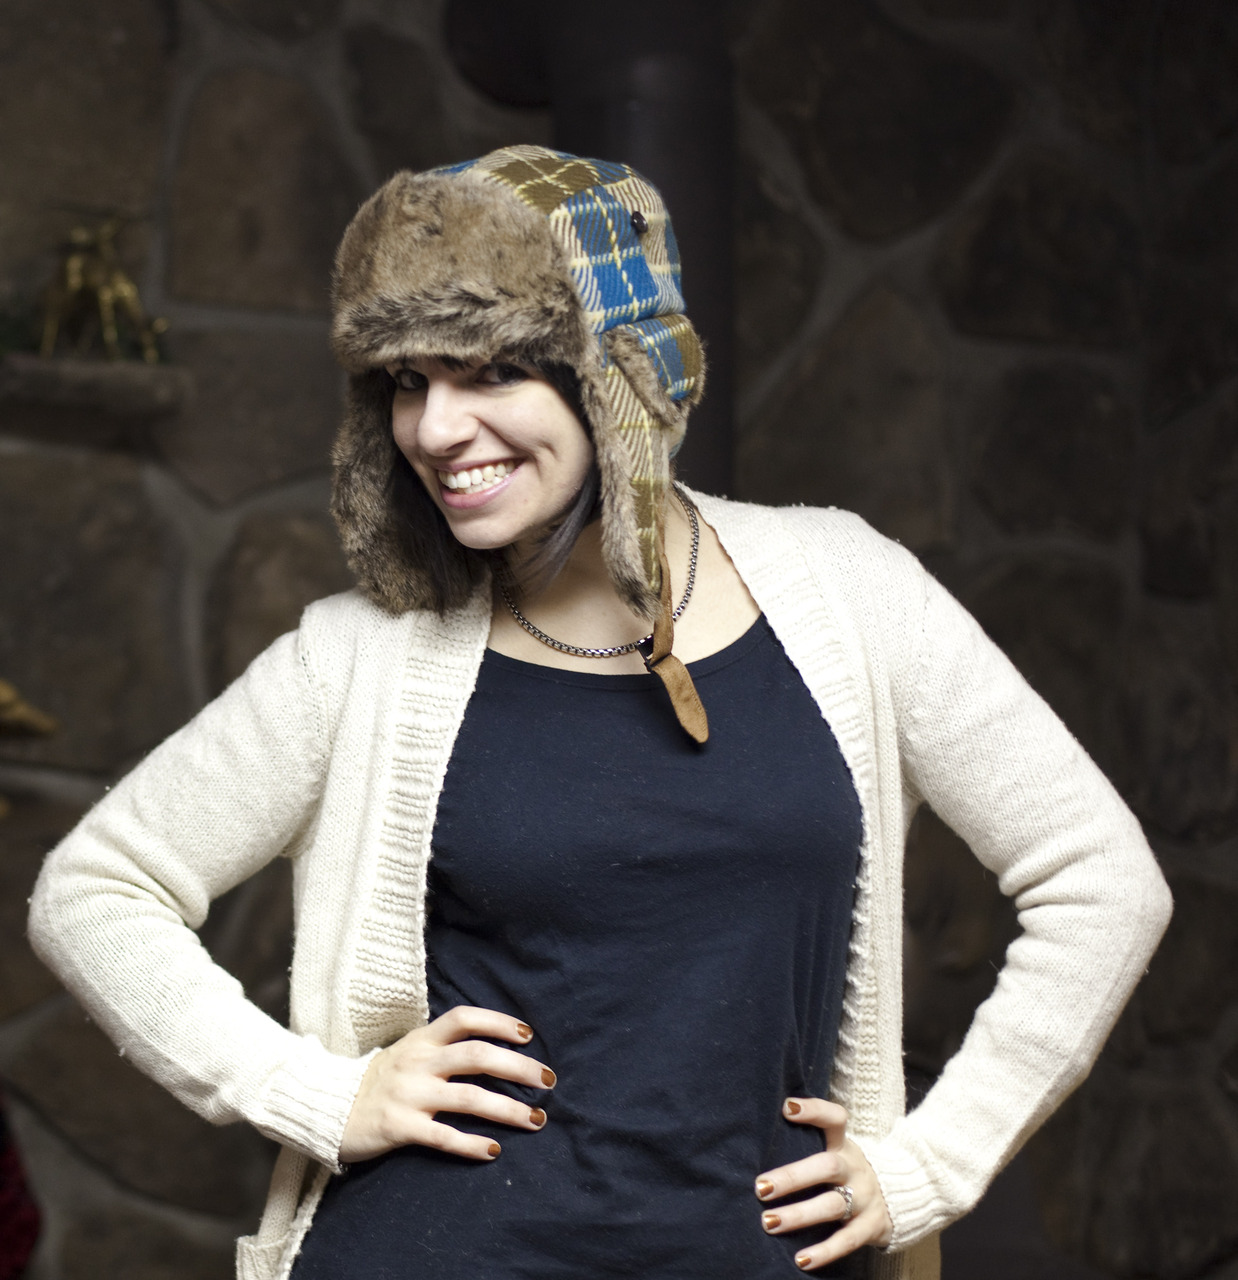 GPOYW: new hat and one dimple edition